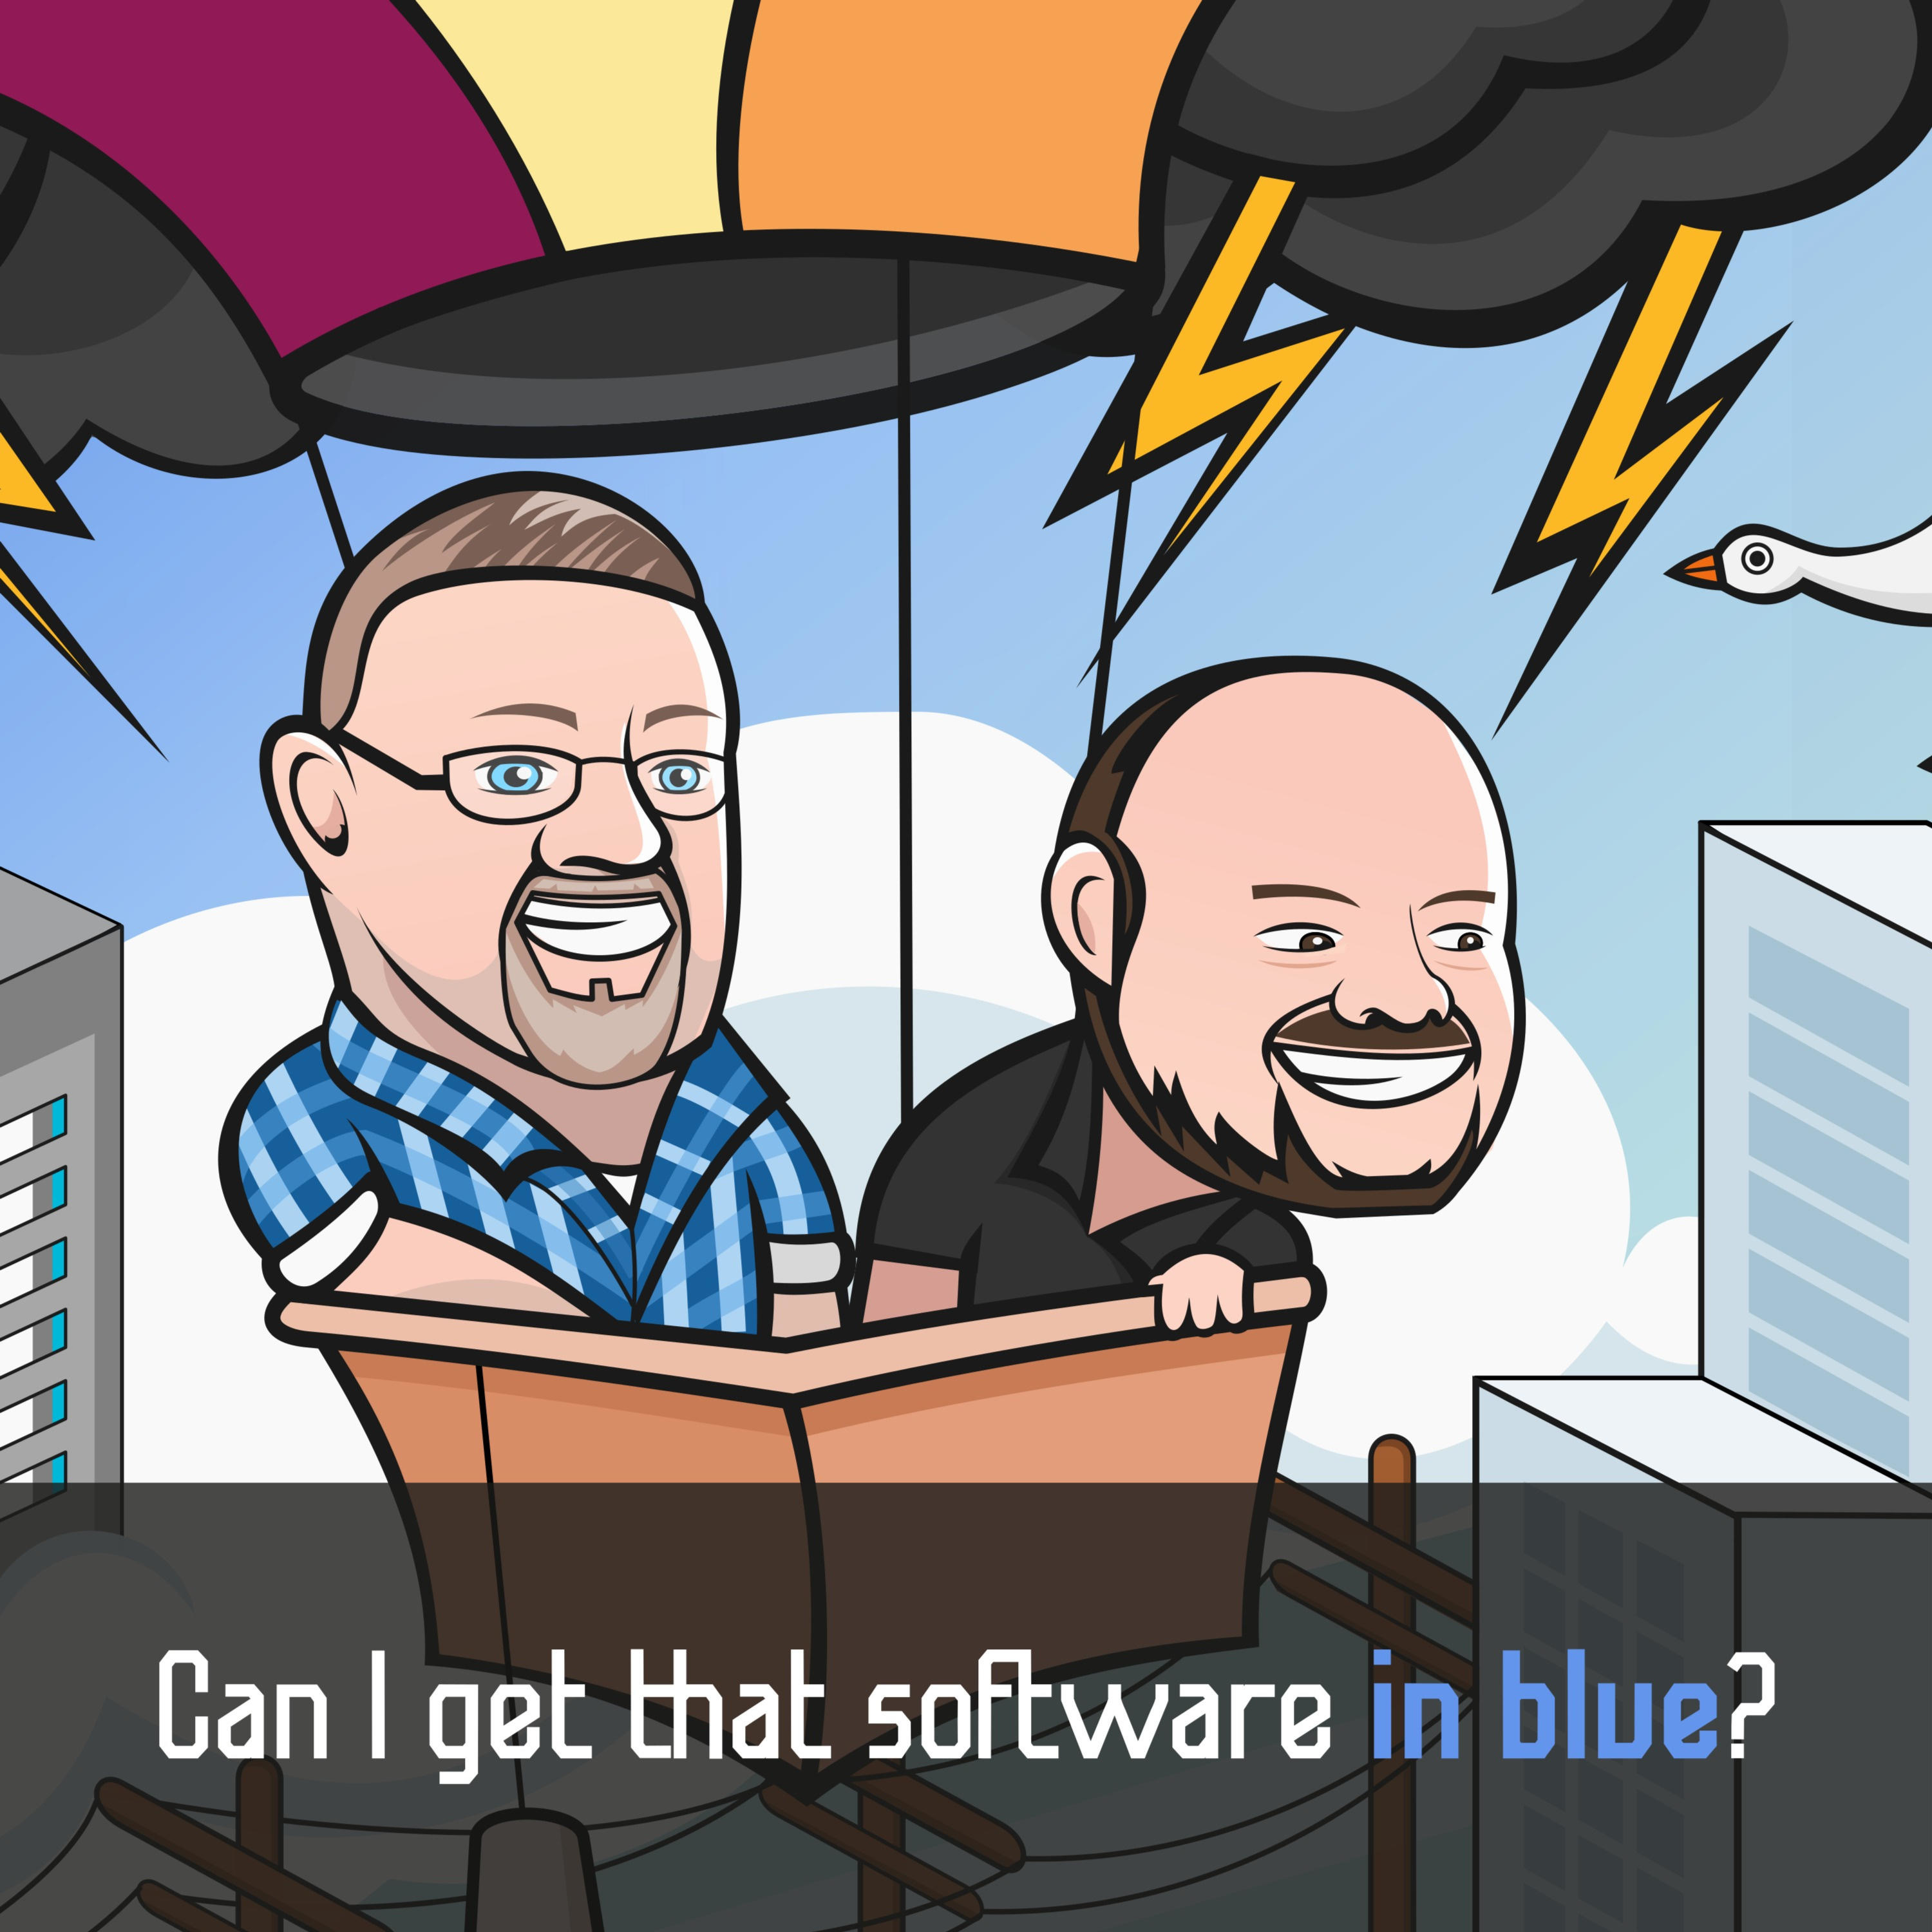 Can I get that software in blue?